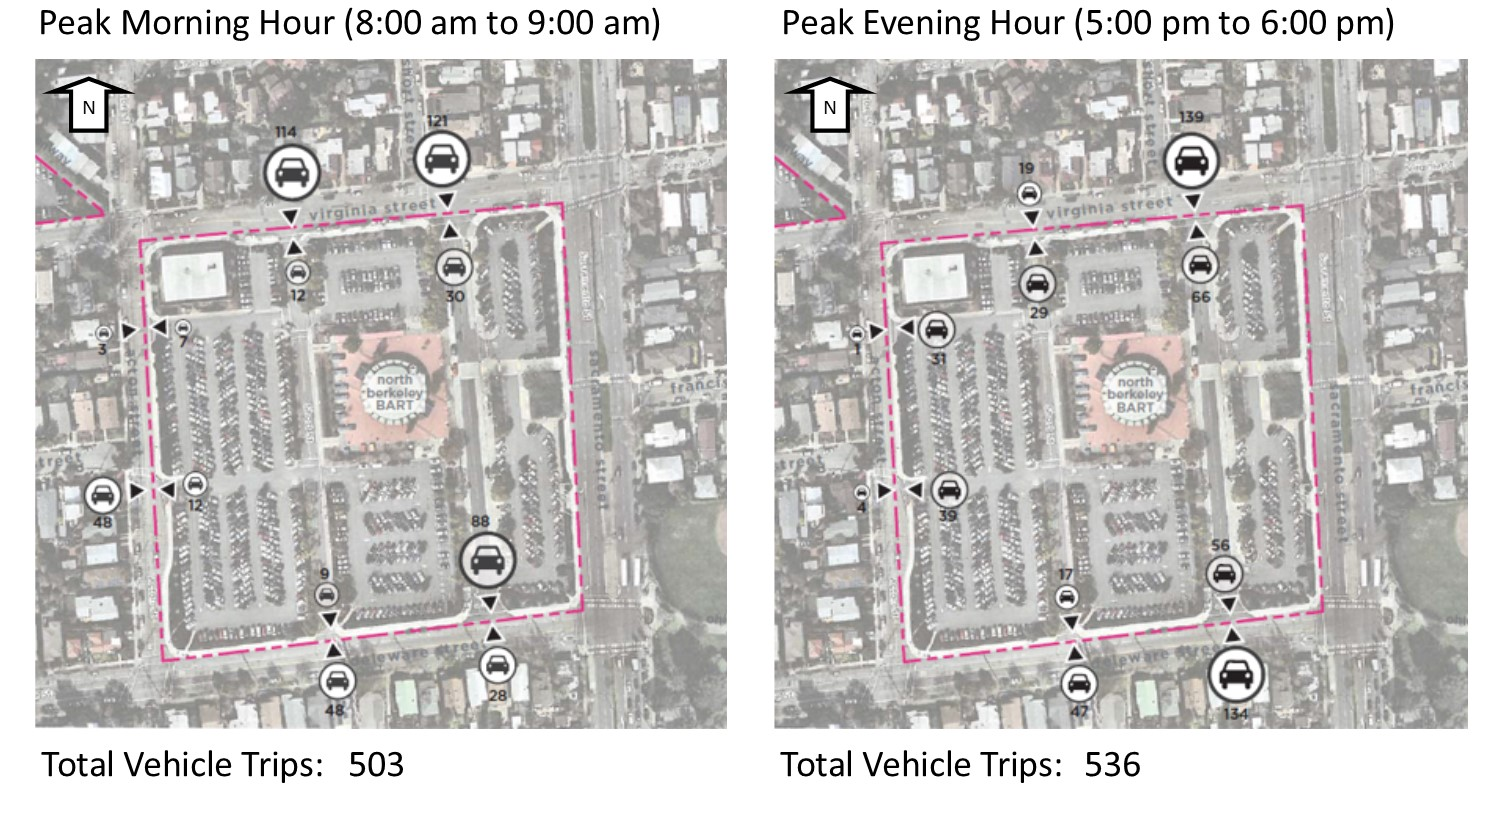 Maps illustrating vehicle entries and exits at North Berkeley station